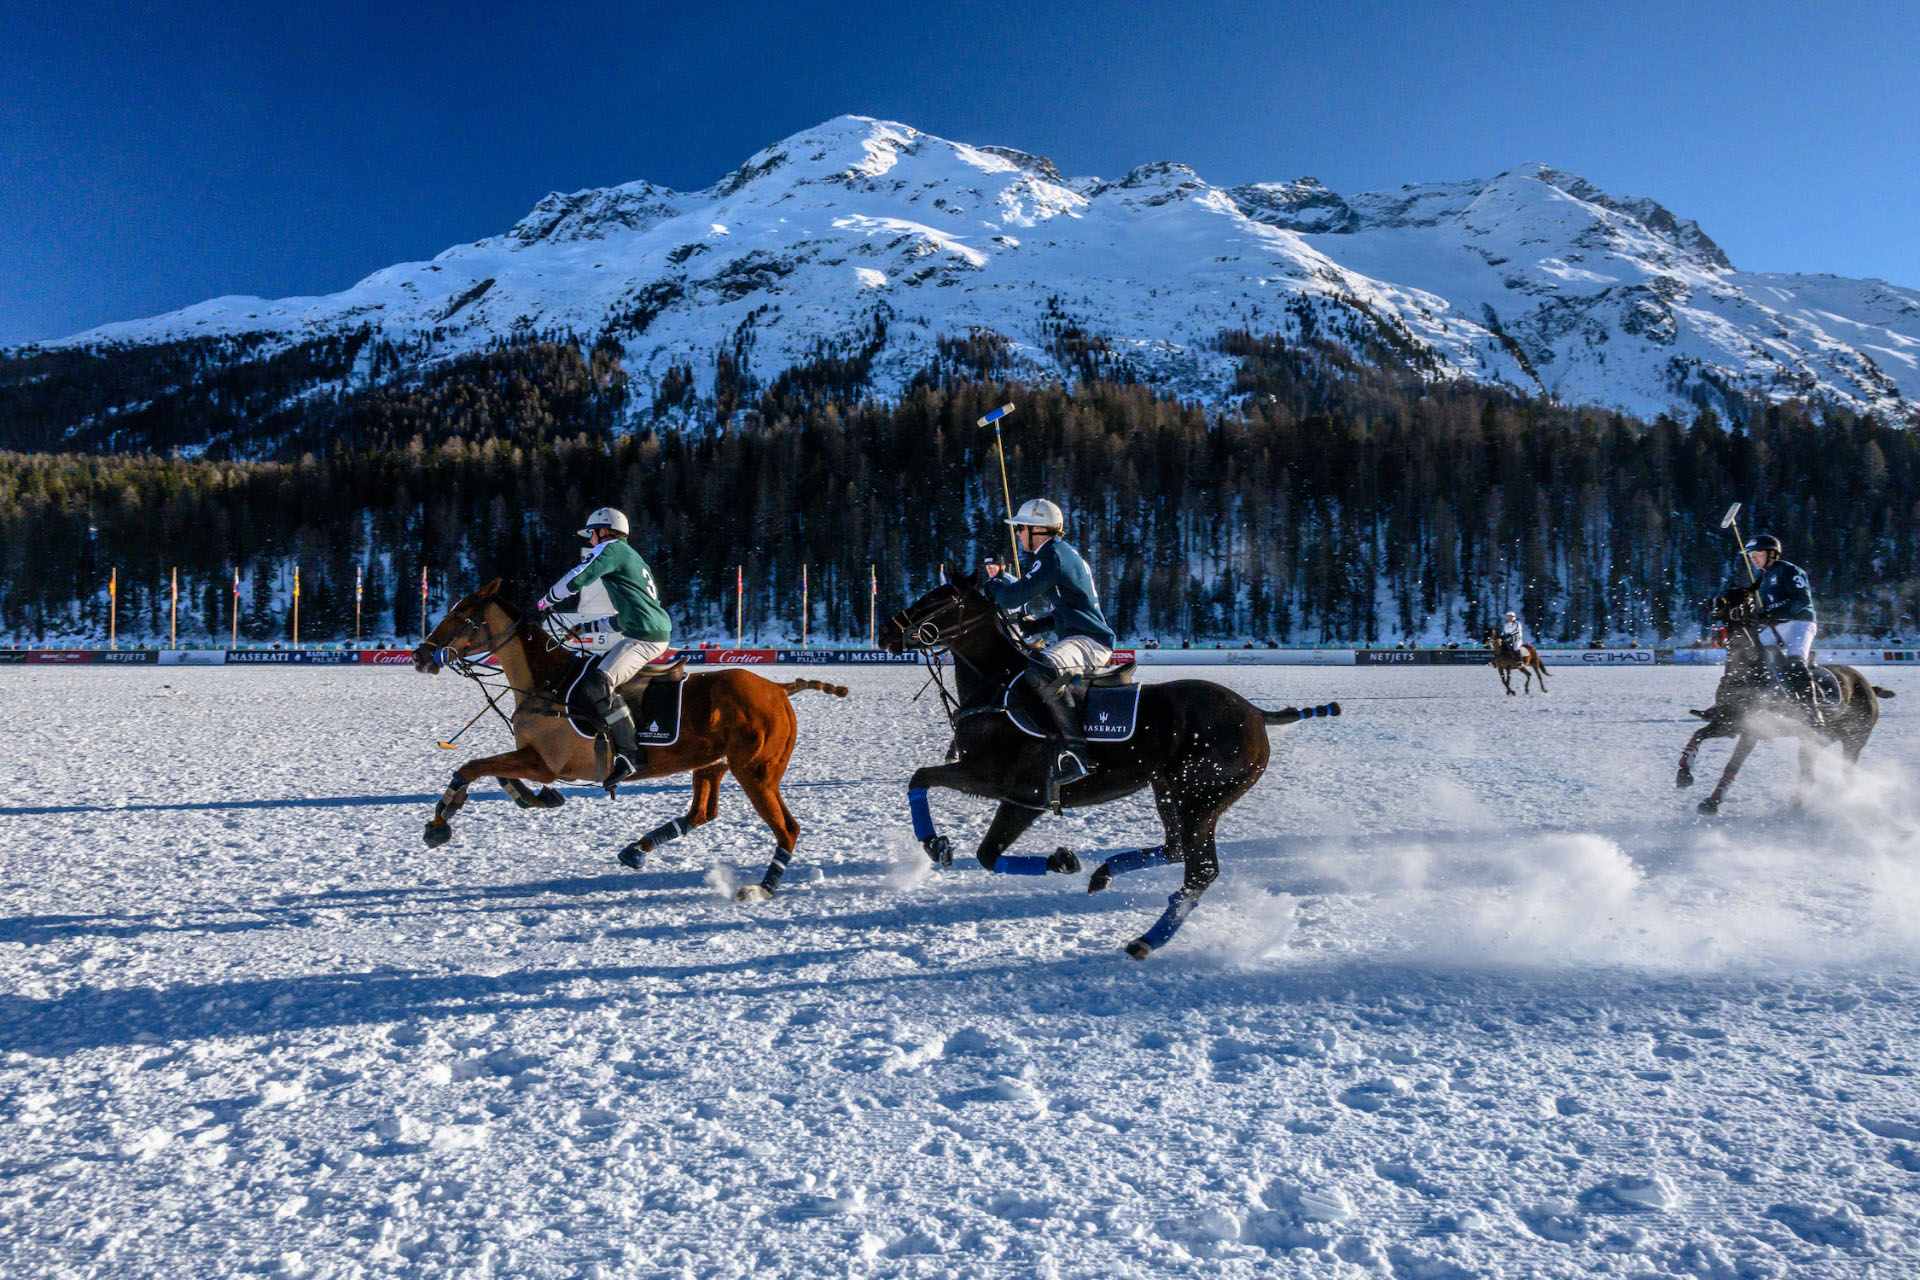 Snow Polo eyeing Winter Olympics